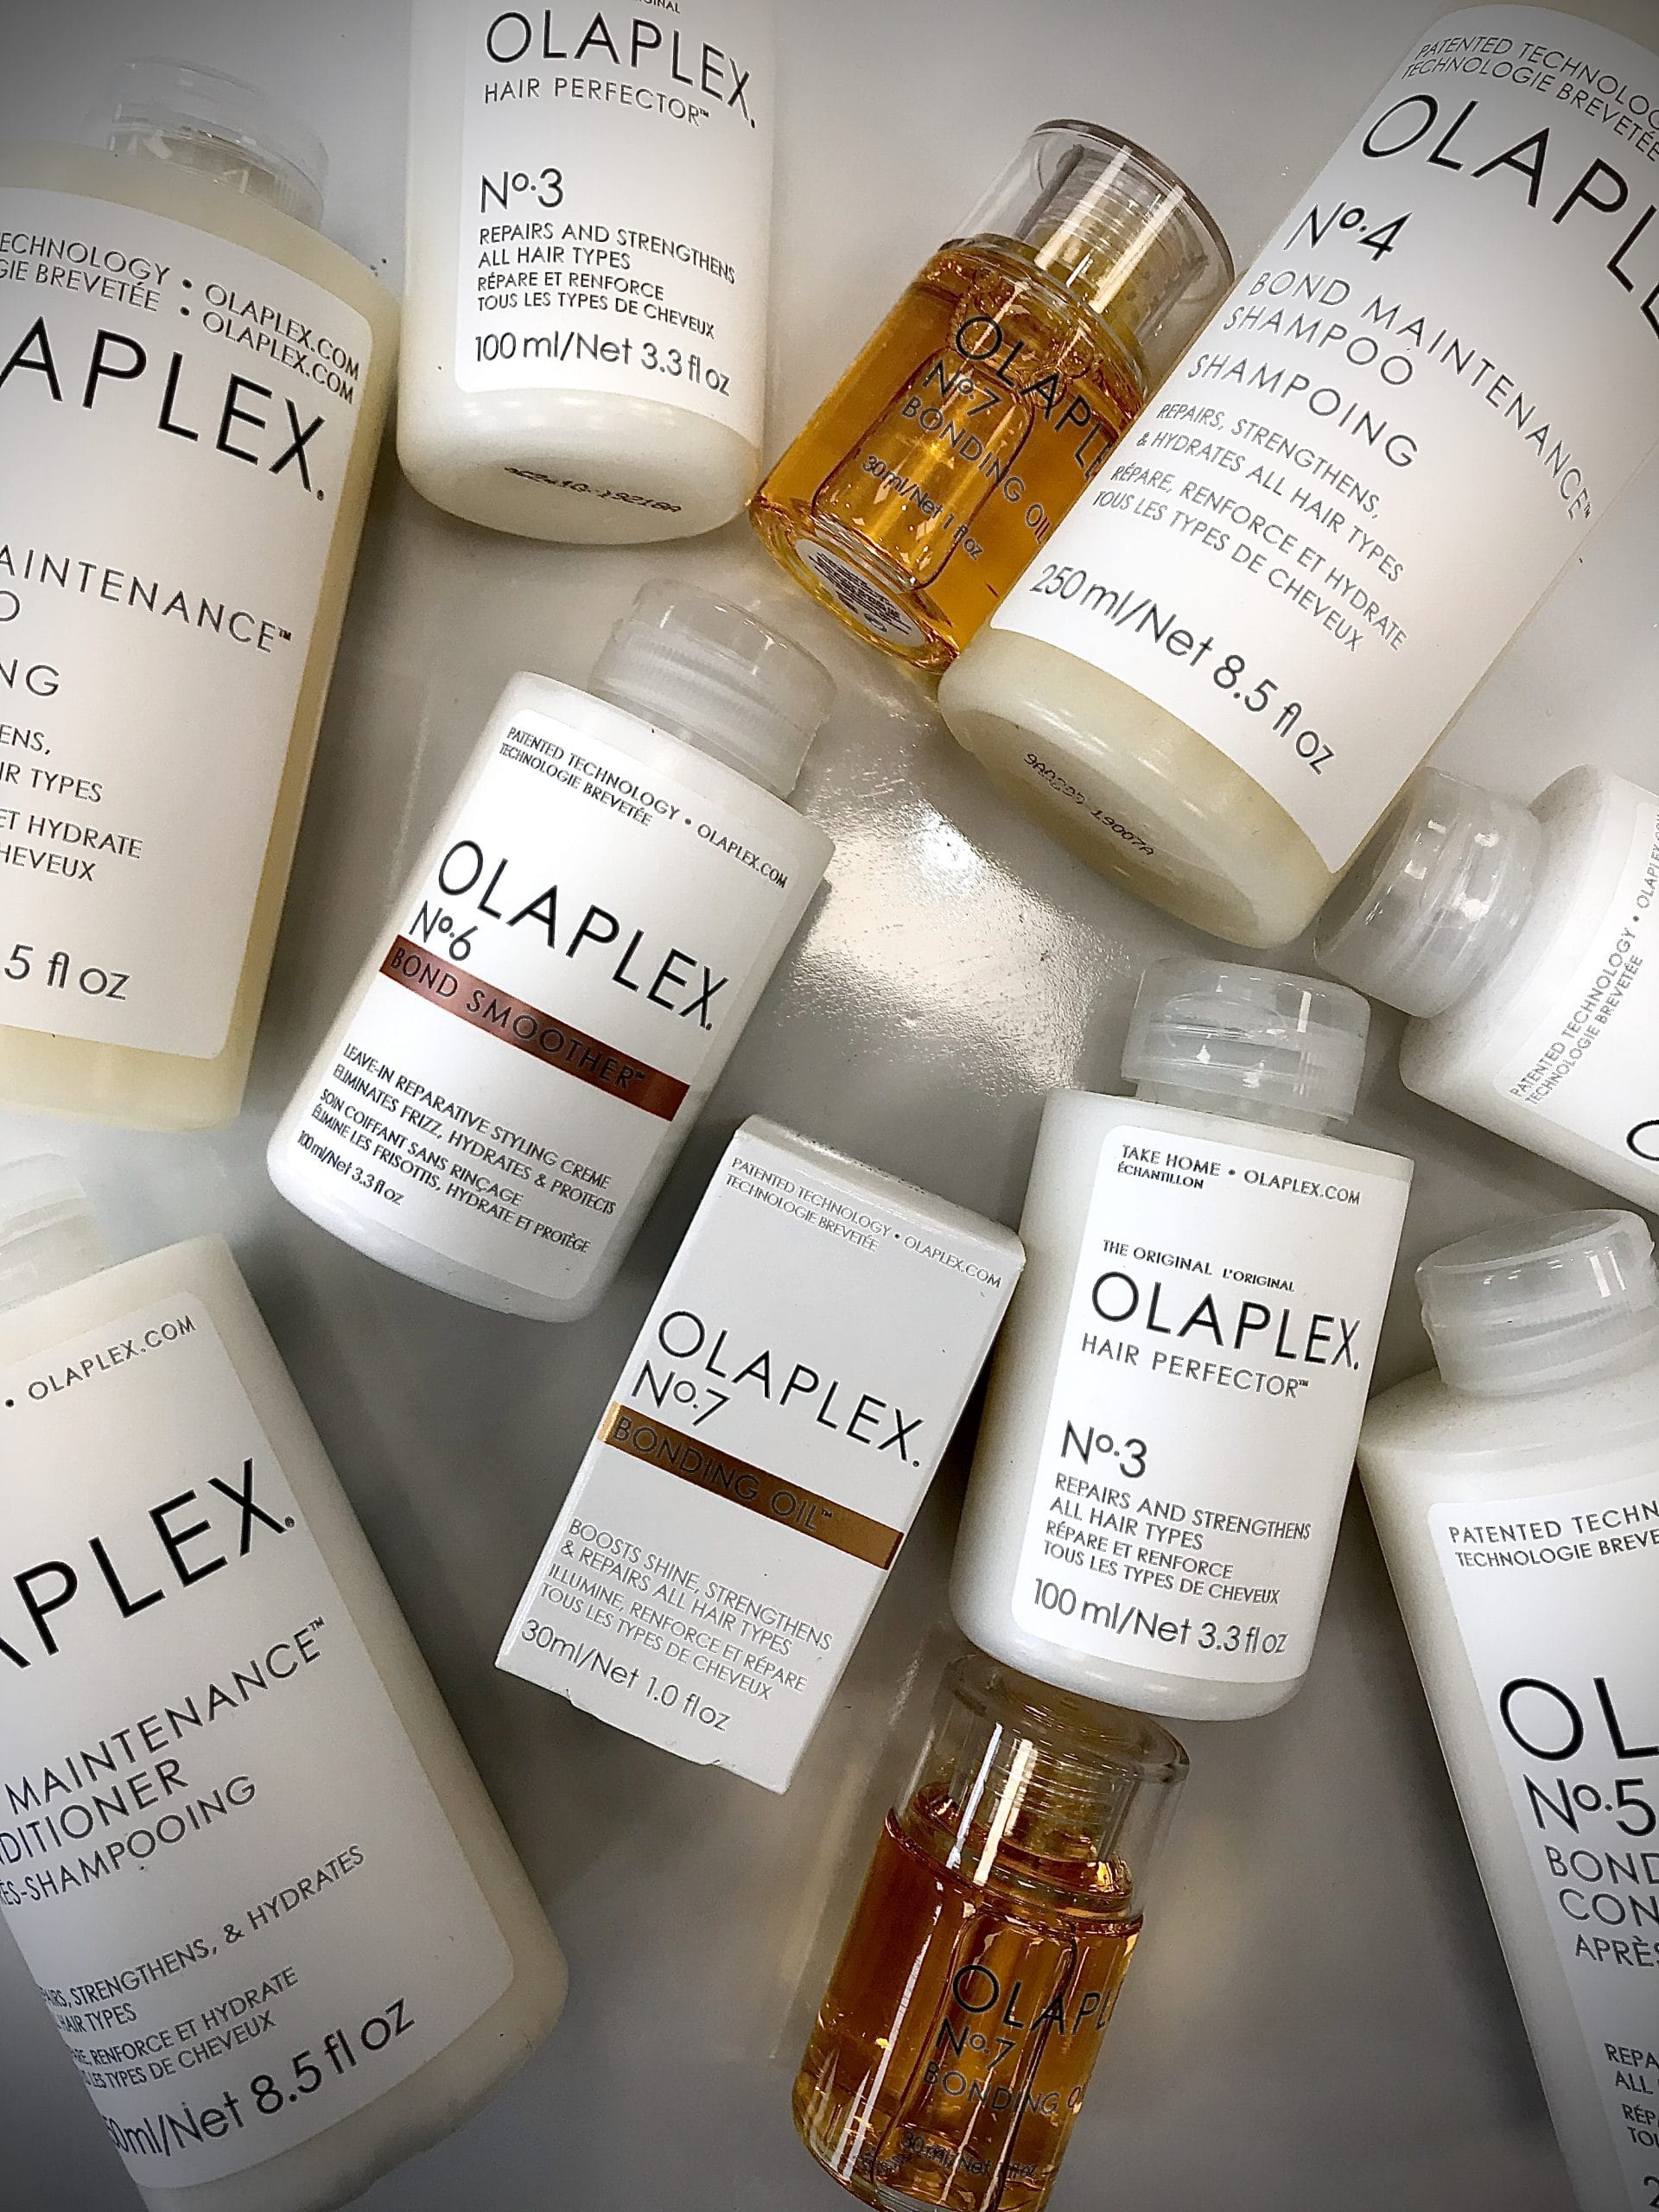 Olaplex products.